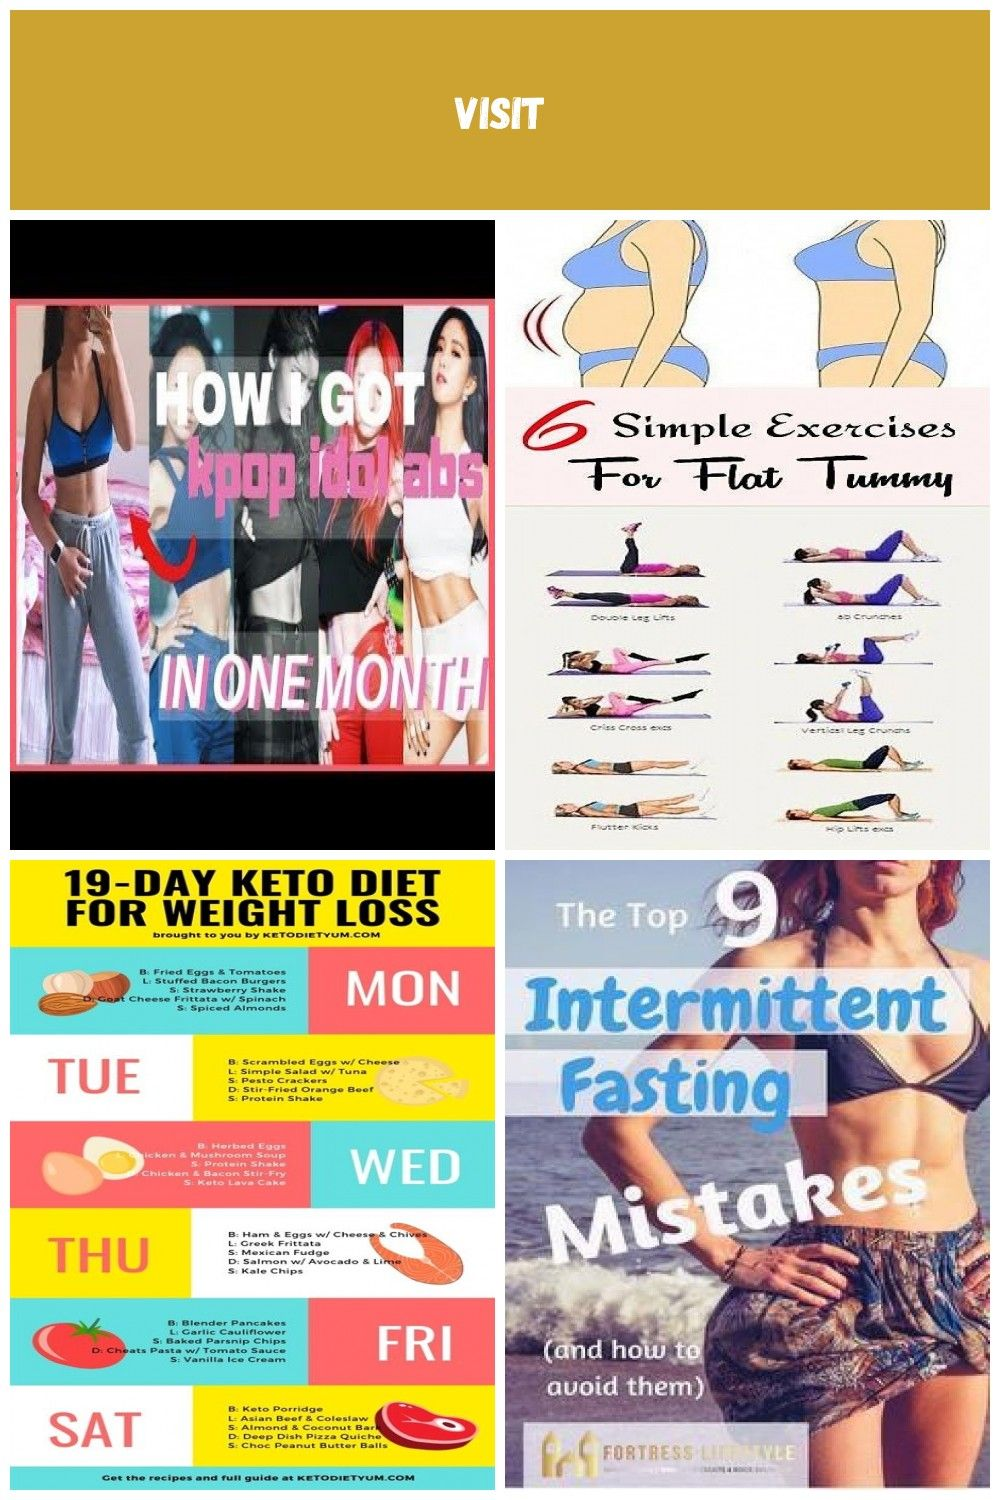 How To Get 11 Abs Like A Kpop Idol In One Month Youtube Kpop Diet Kpop Diet Easy Diet Plan Easy Workouts